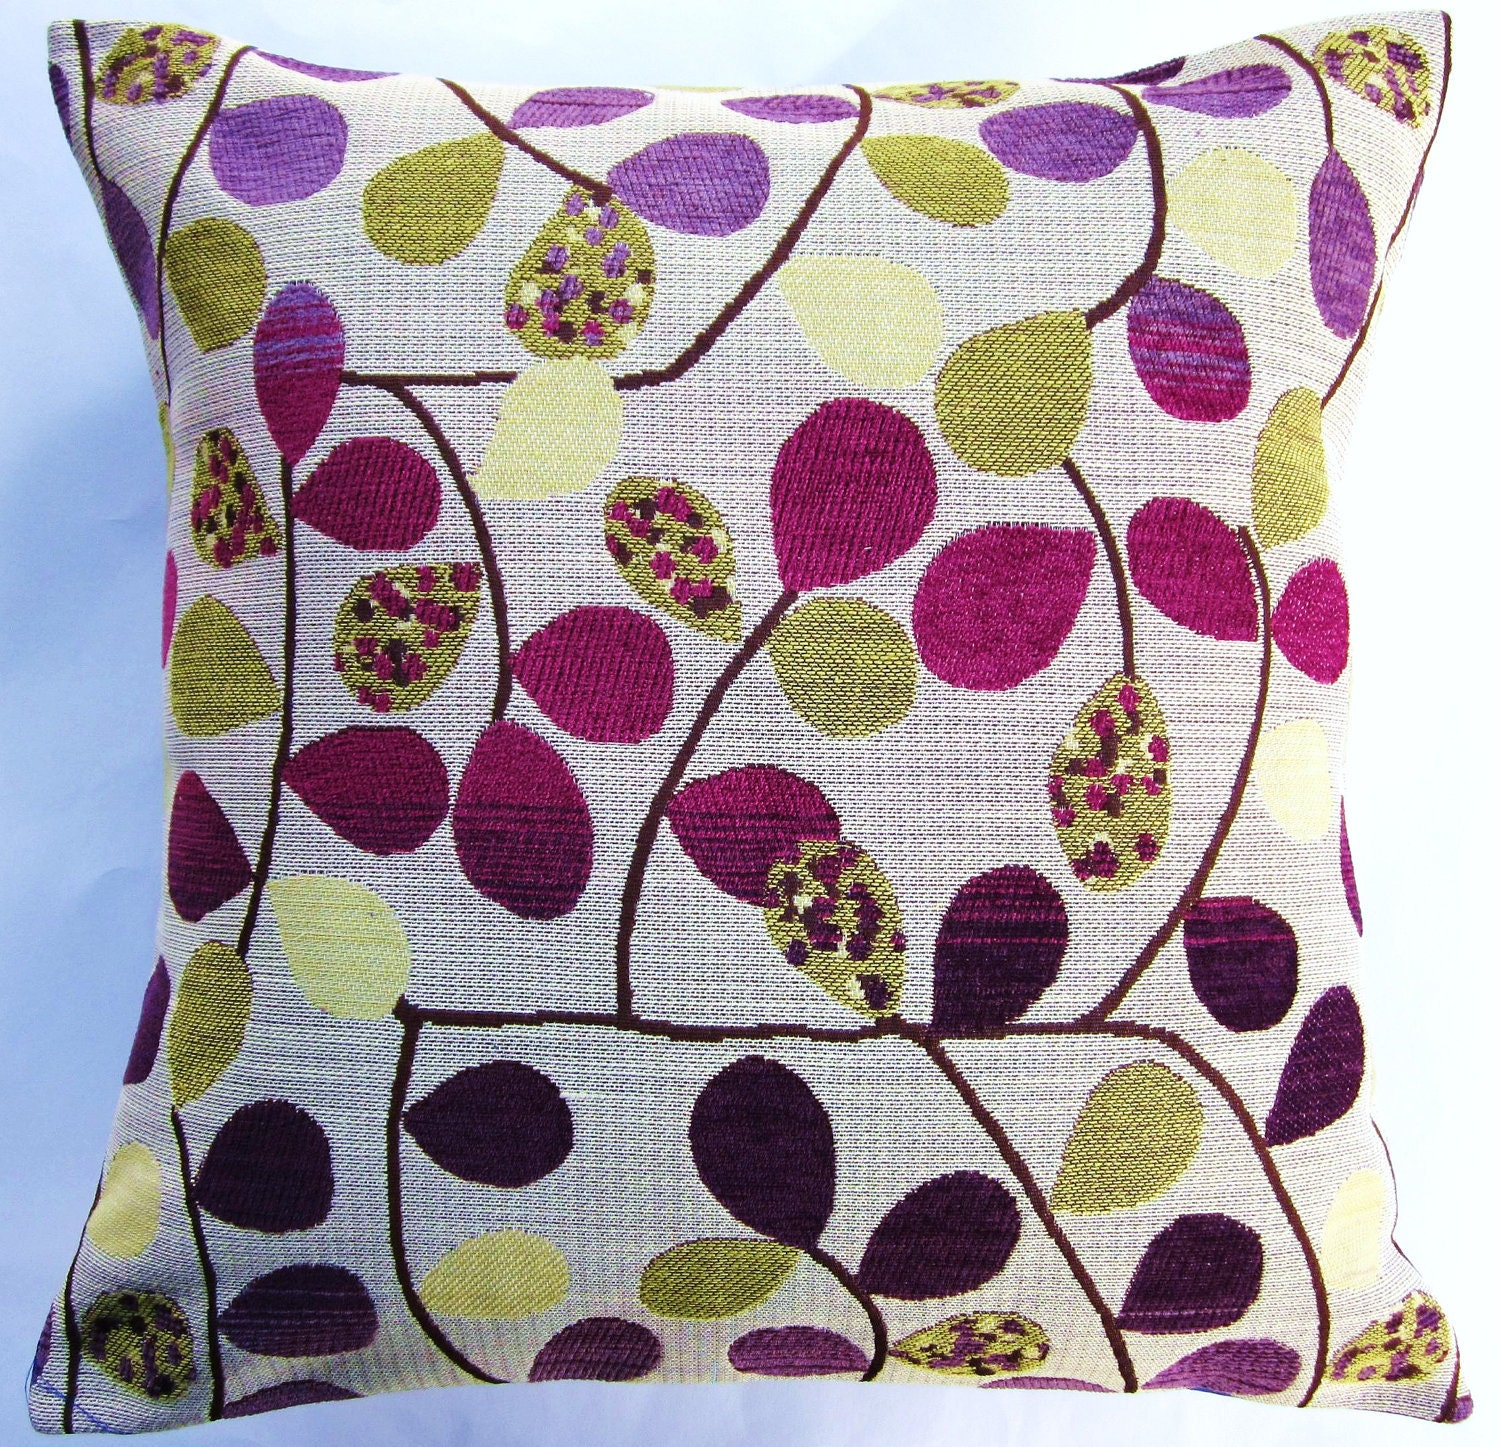 Kohls Purple Throw Pillows : Purple Throw Pillow Cover Pots of Purple and Gold Cushion